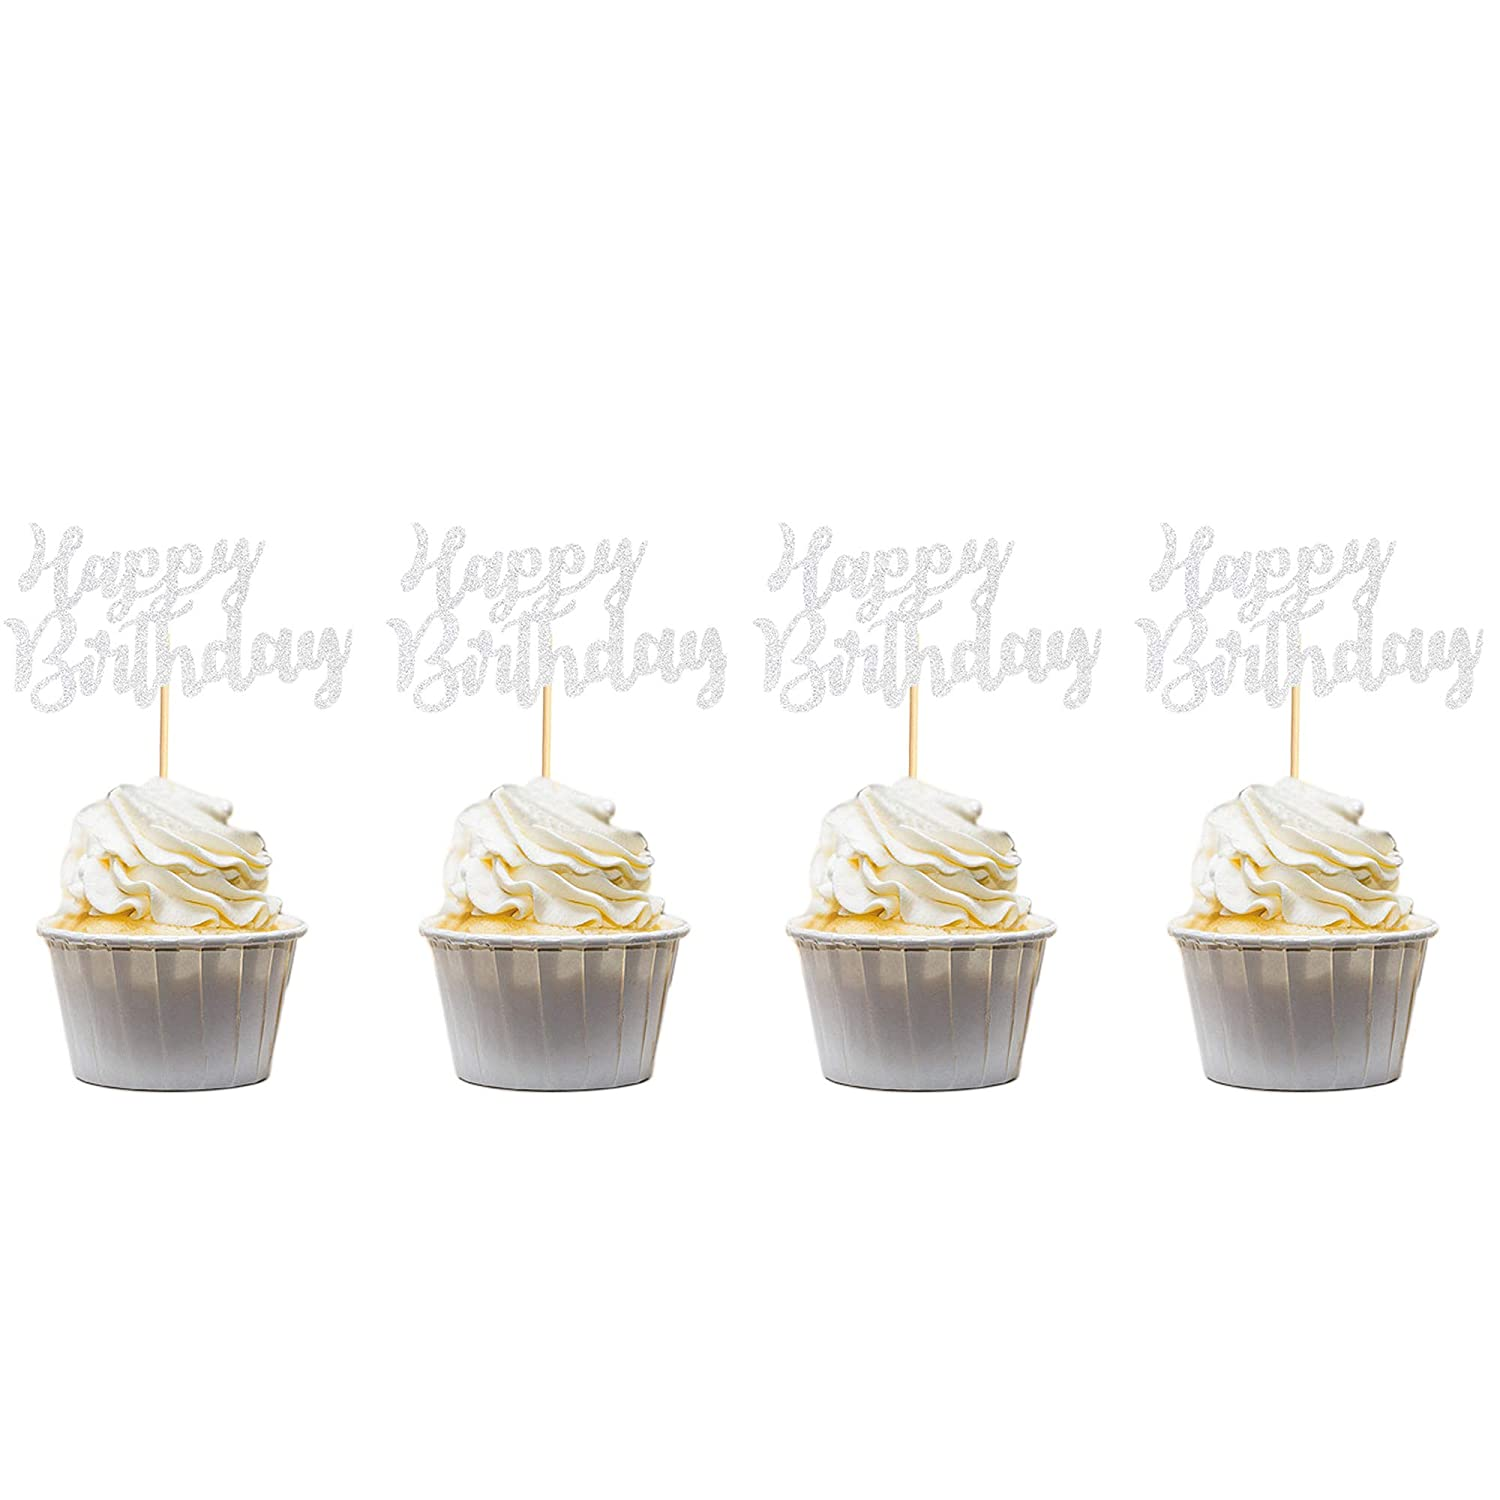 Arthsdite Pack of 48 Pre-Assembled Silver Glitter Happy Birthday Cupcake Toppers Cake Food Fruit Picks for Celebrating Birthday Party Decoration Supplies